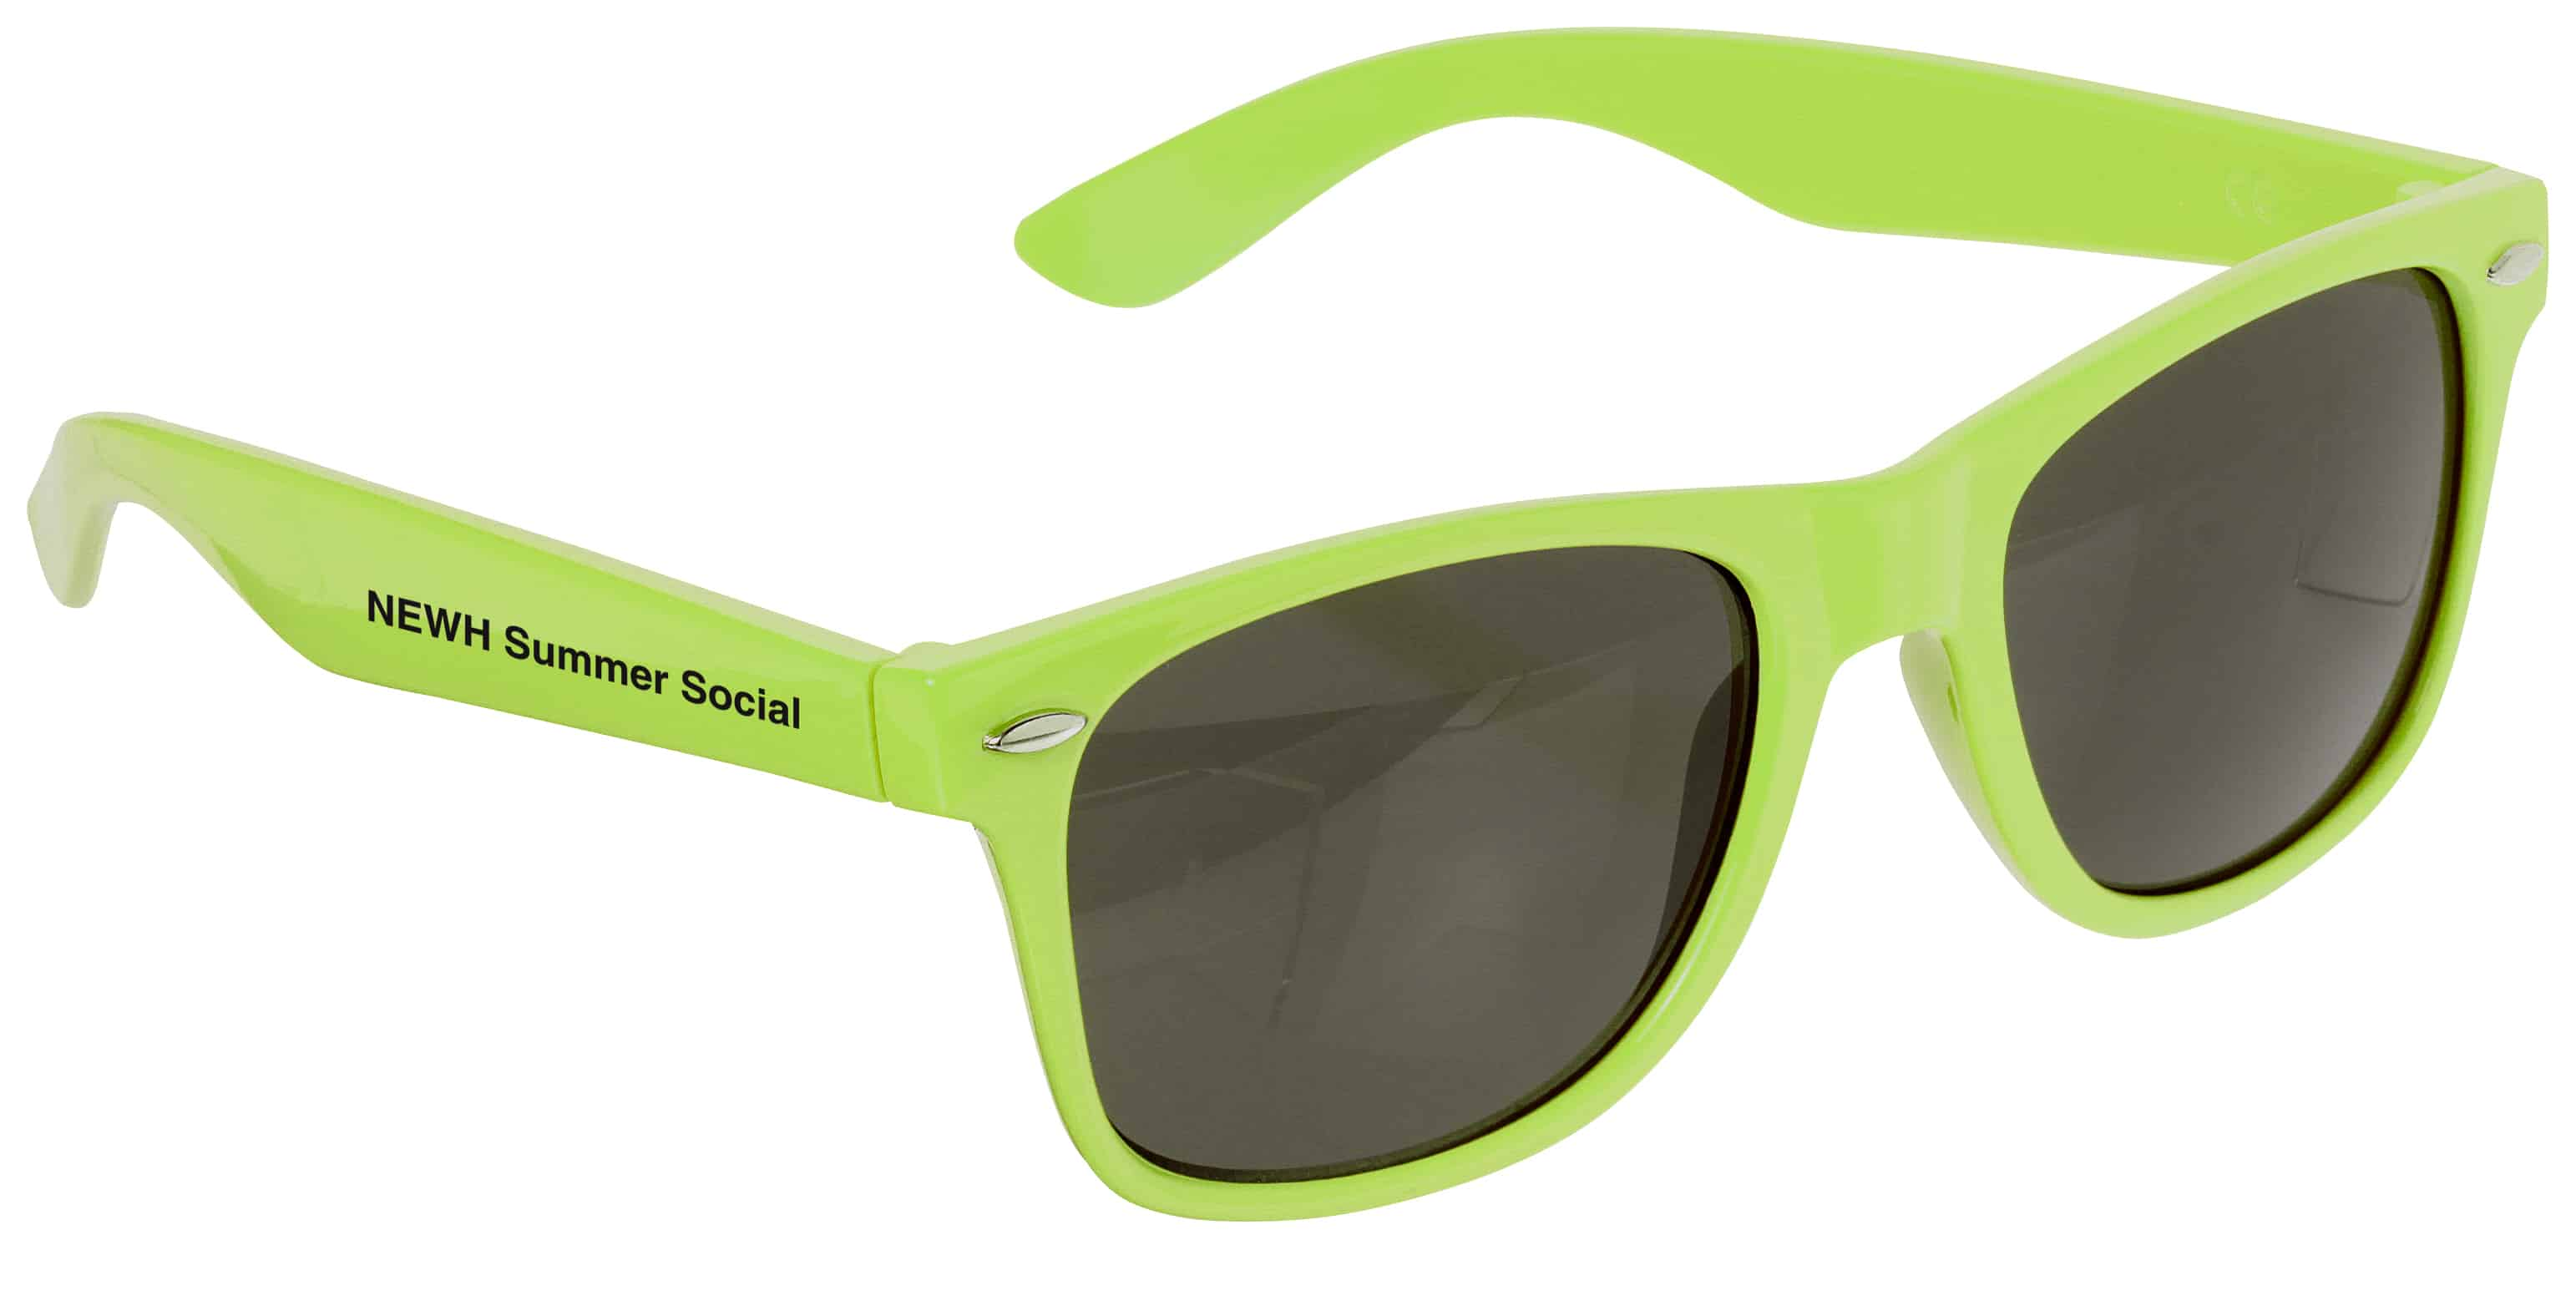 A pair of neon green Risky Business Sunglasses.